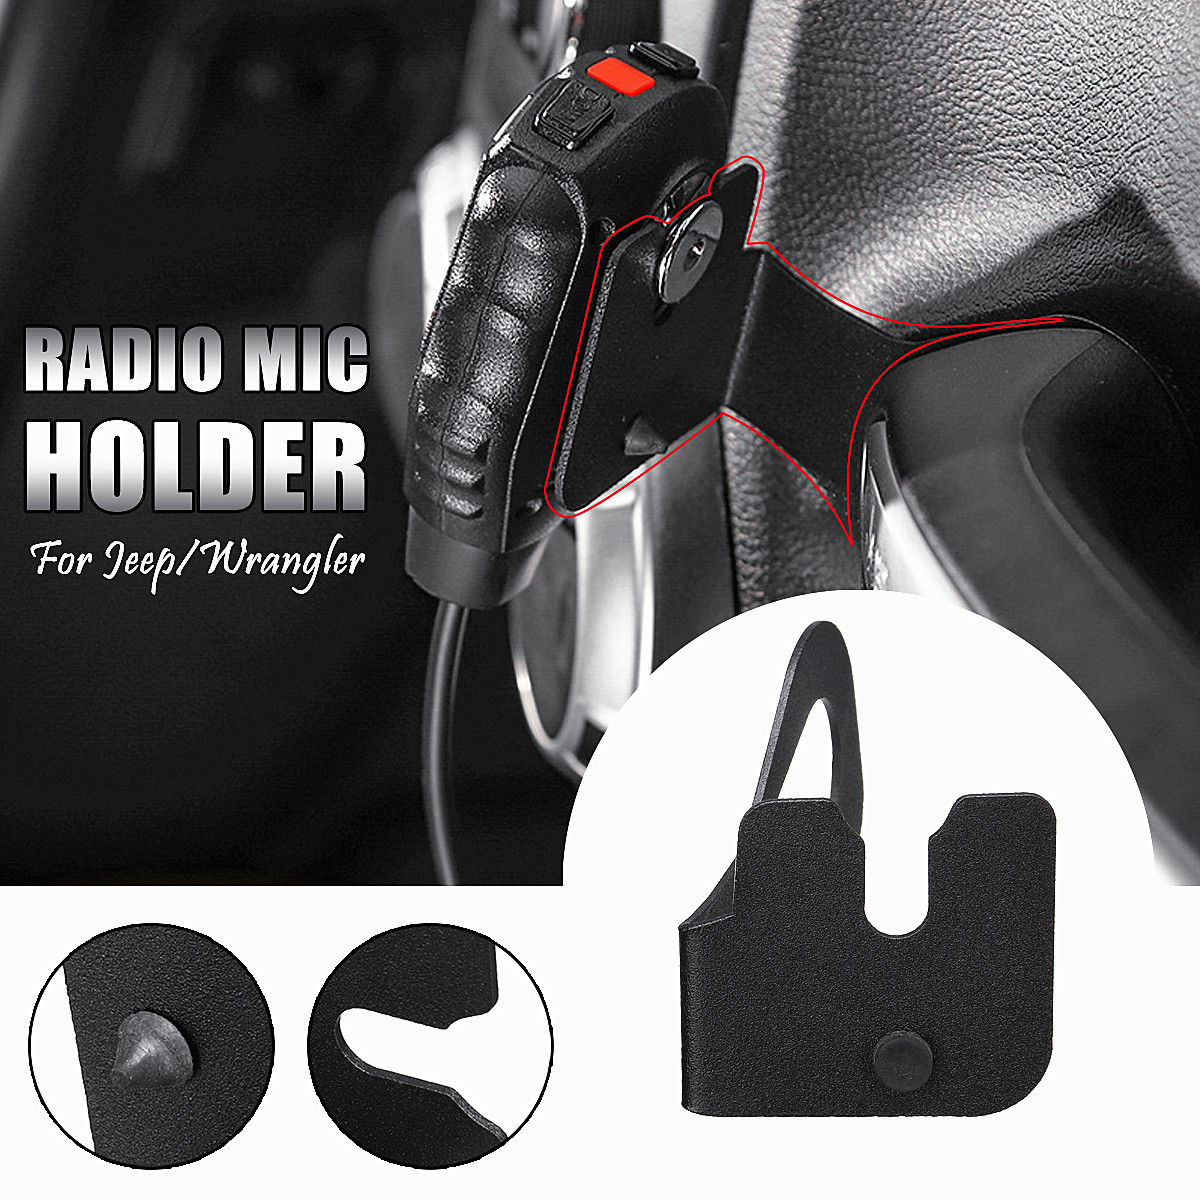 Interphone Stand Holder Radio Mic Modification Accessories For JEEP